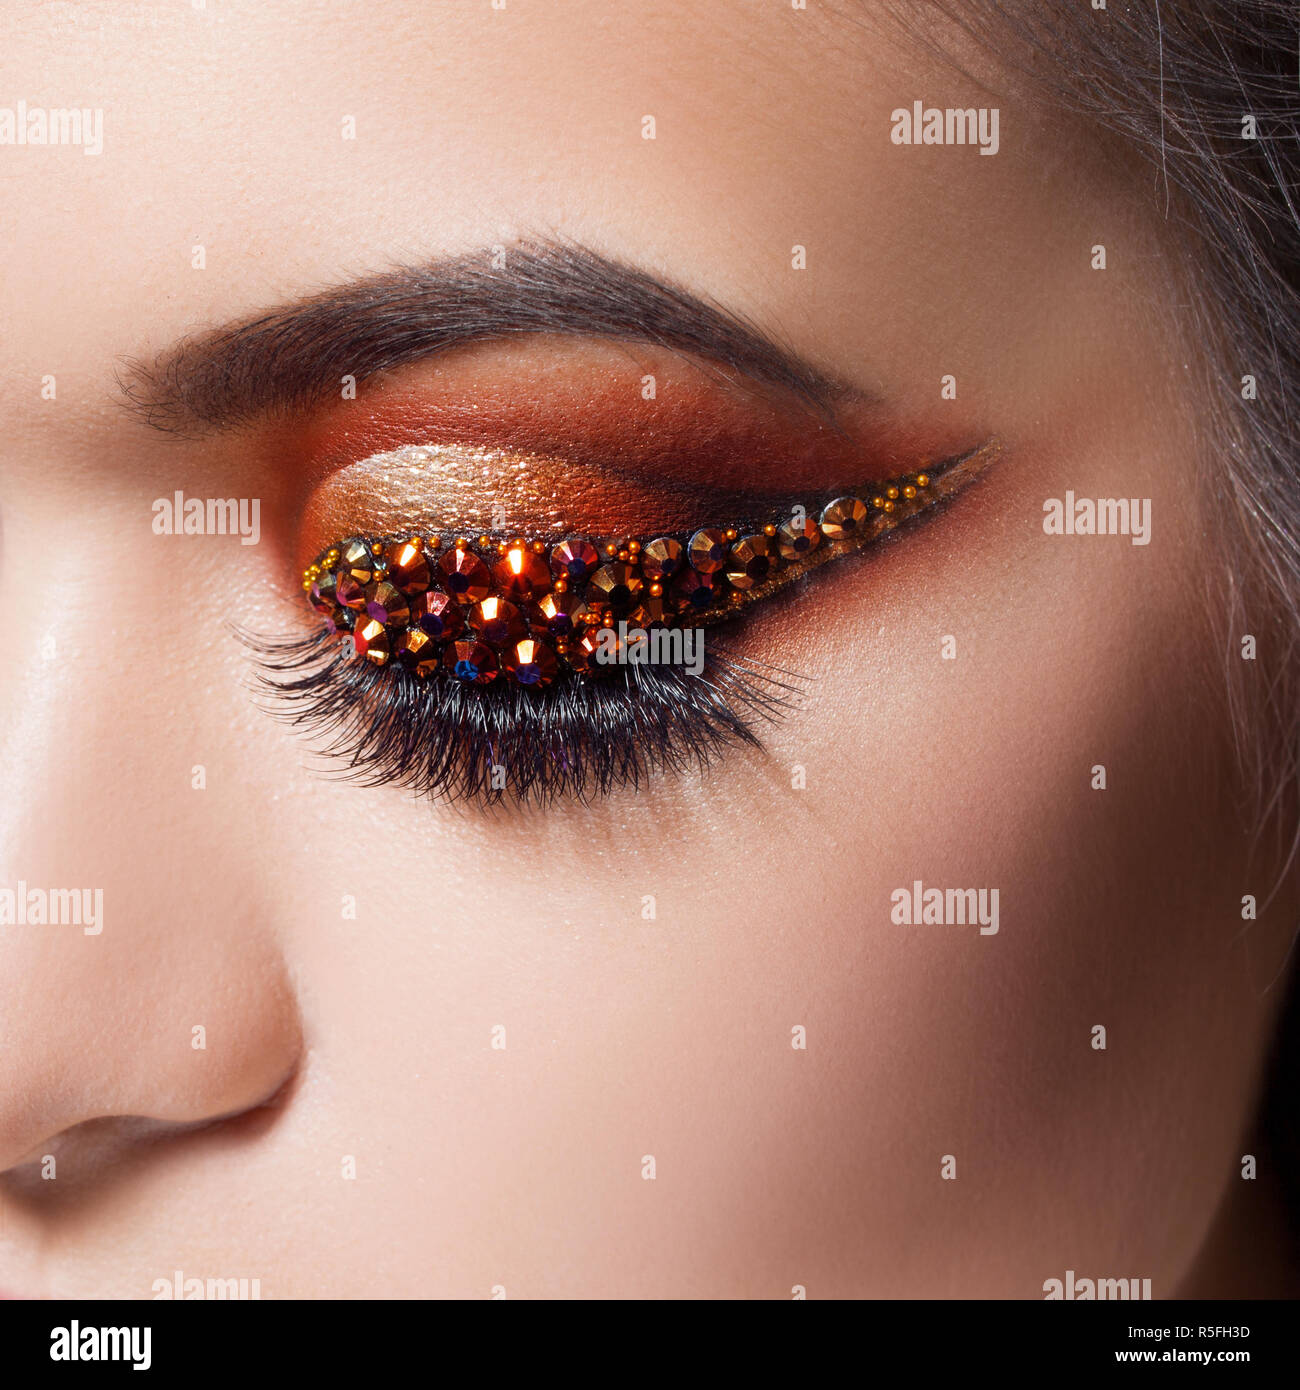 Amazing Bright Eye Makeup With A Arrow With Rhinestones Brown And